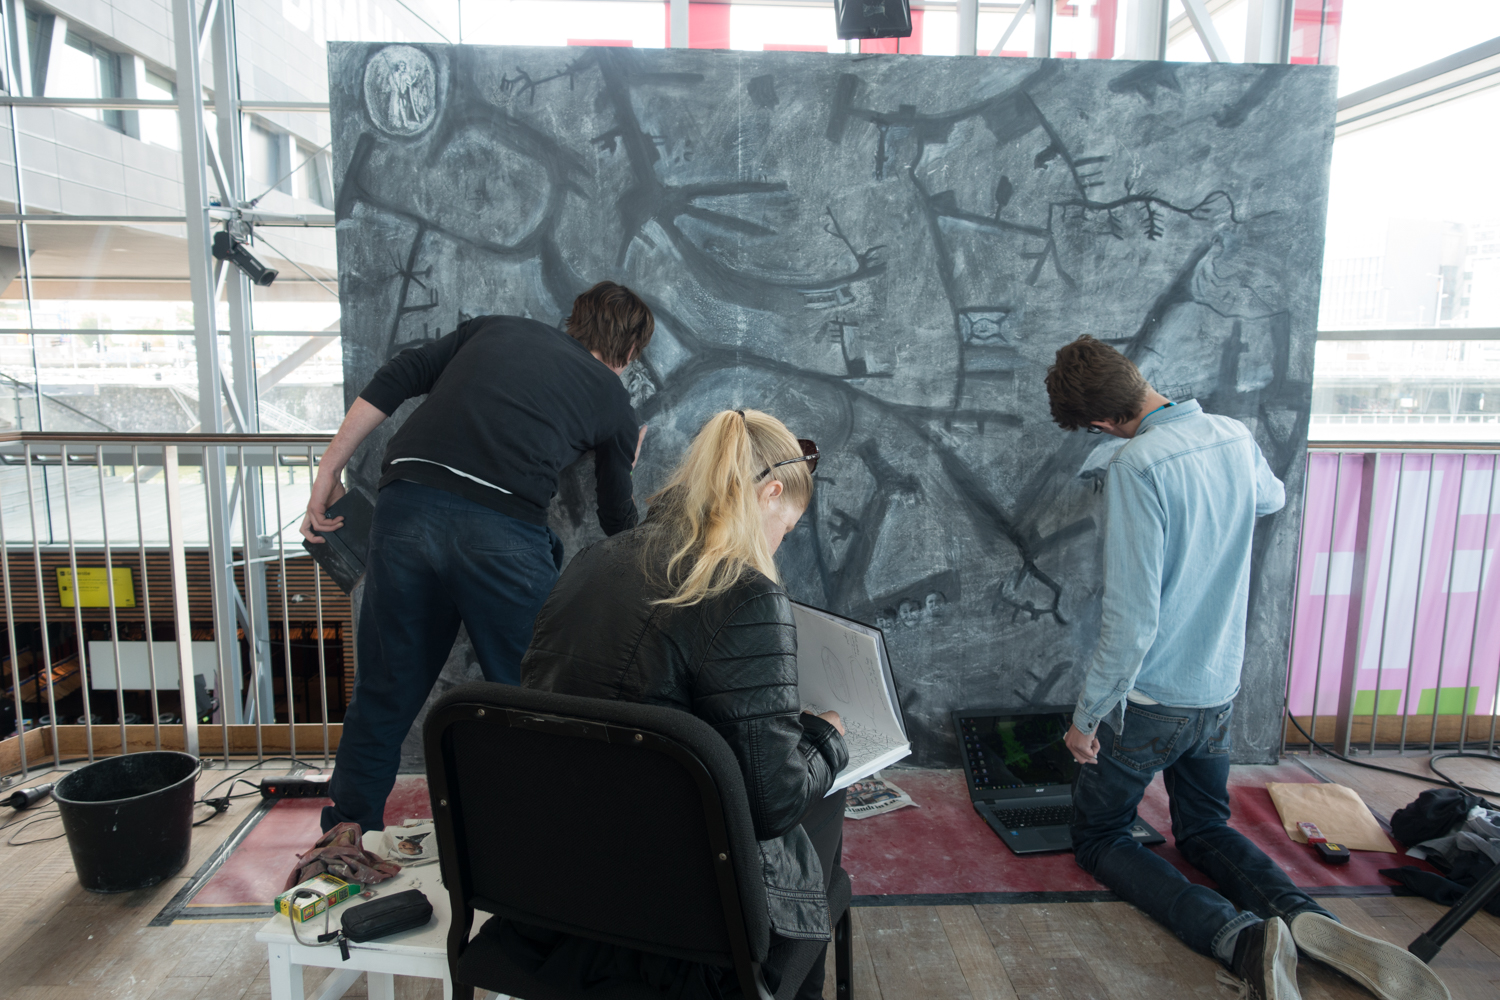 Artists working on their utopic city during Urbo Kune at   the Muziekgebouw aan 't IJ. Photo by Canan Marasligil